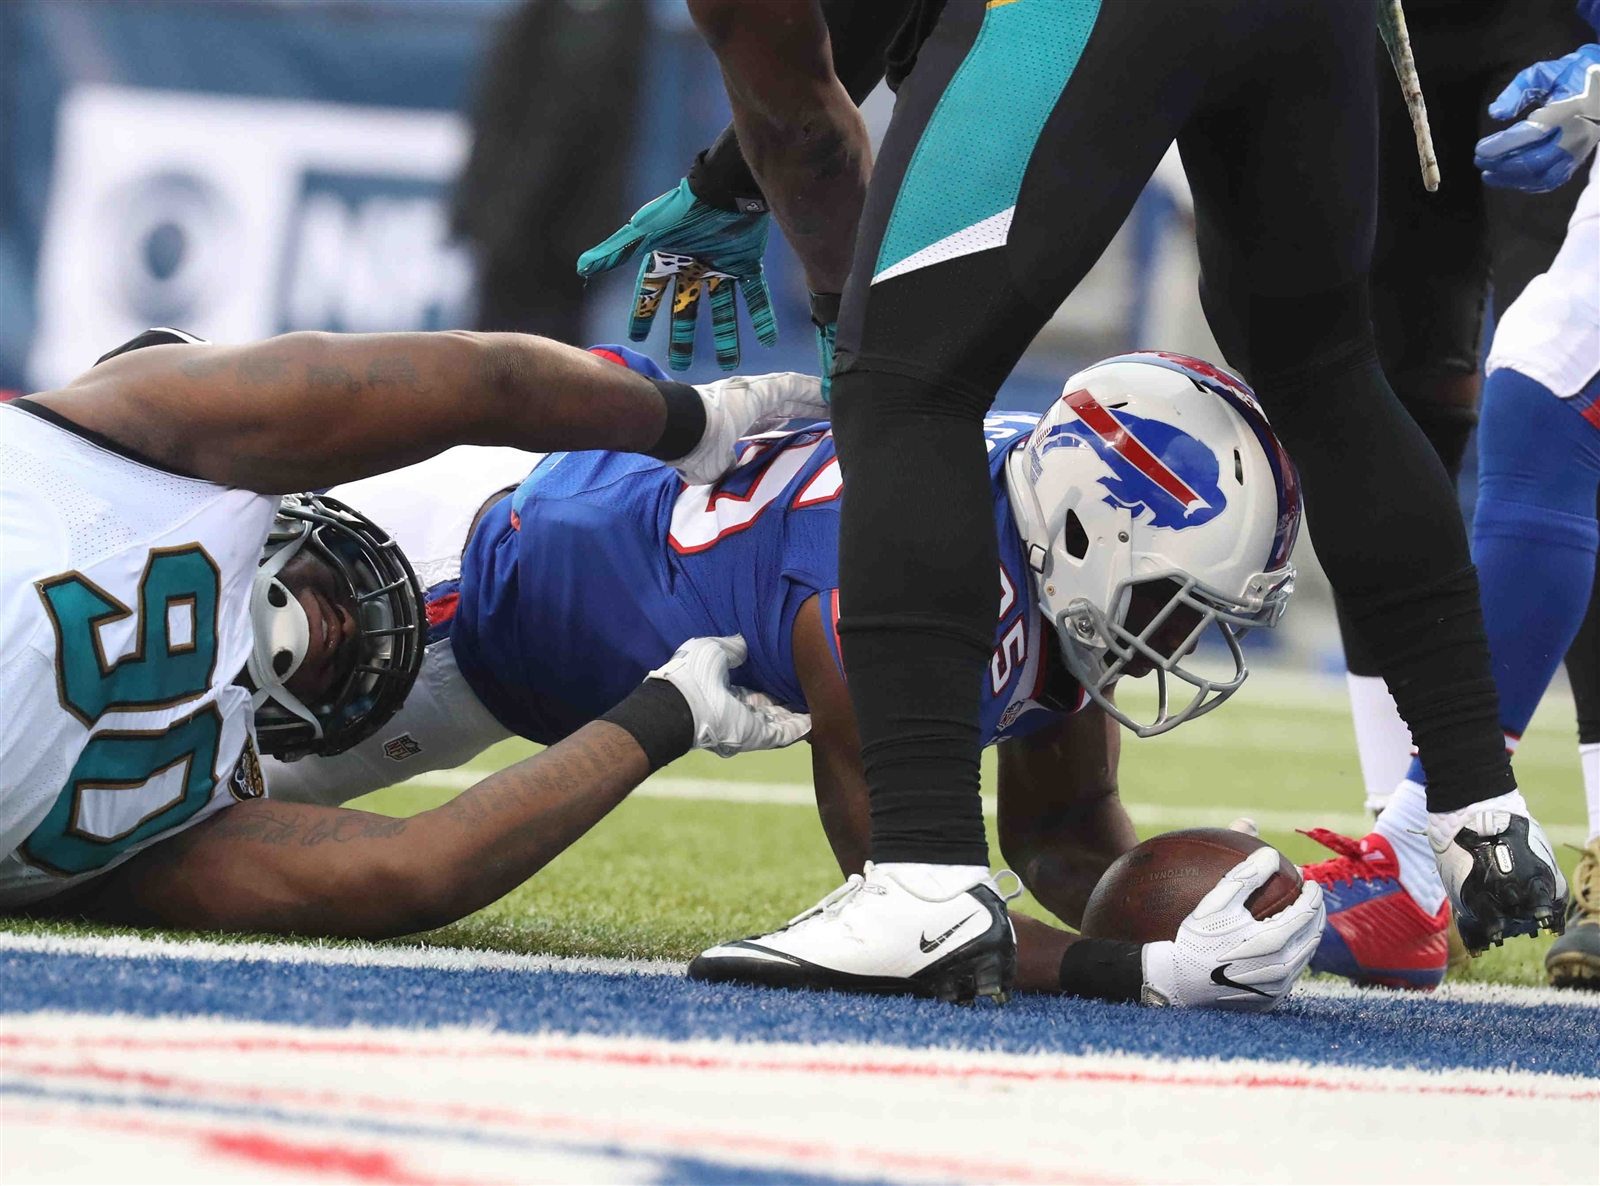 LeSean McCoy scores a two-point conversion against the Jaguars at New Era Field on Nov. 27, 2016. (James P. McCoy/Buffalo News)